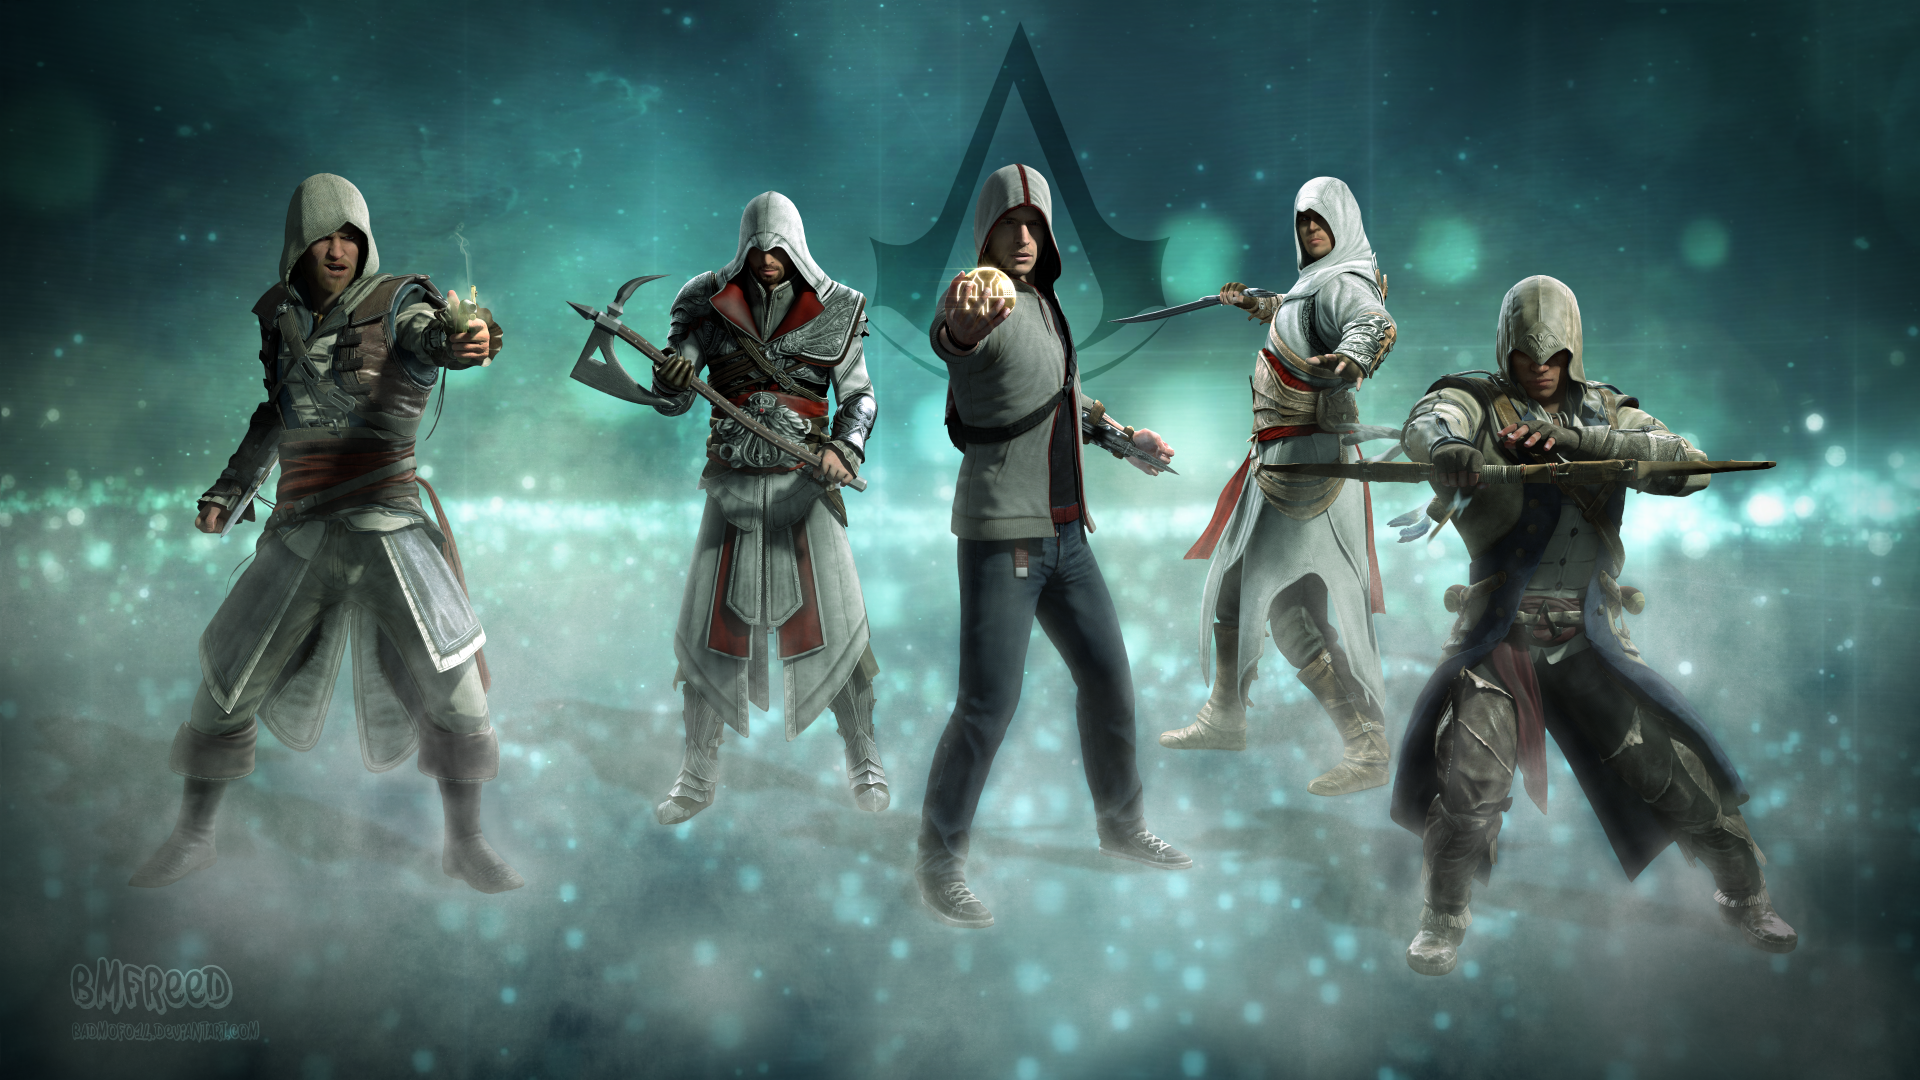 Assassins creed wallpaper full widescreen 009j51717g 1920x1080 px assassins creed wallpaper full widescreen 009j51717g 1920x1080 px 427 mb games assassins creed voltagebd Gallery